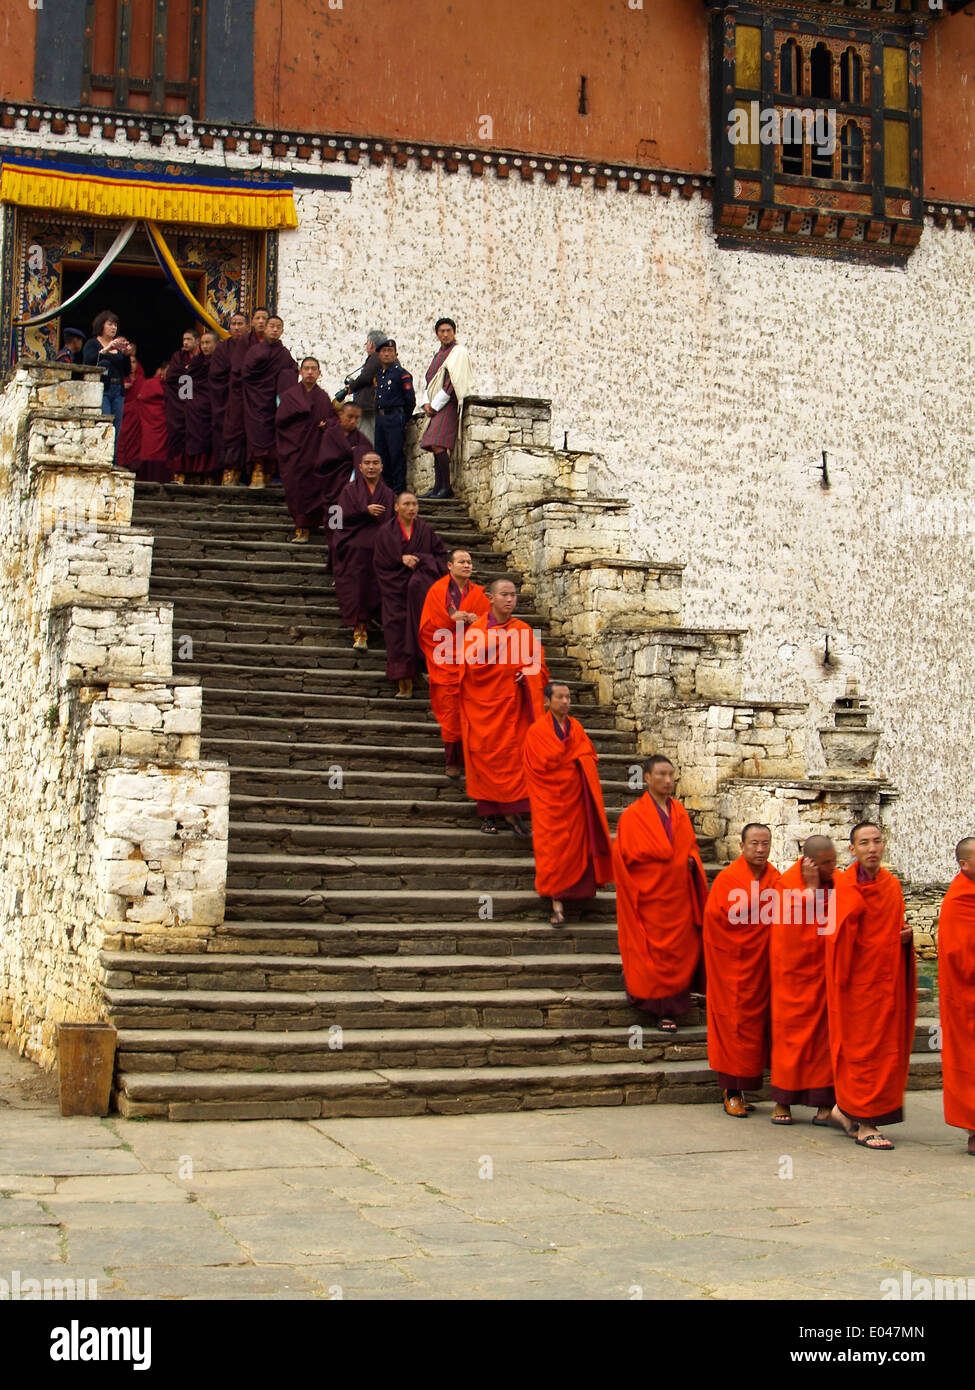 Monks processional at the Tsechu Festival in Paro,Bhutan - Stock Image